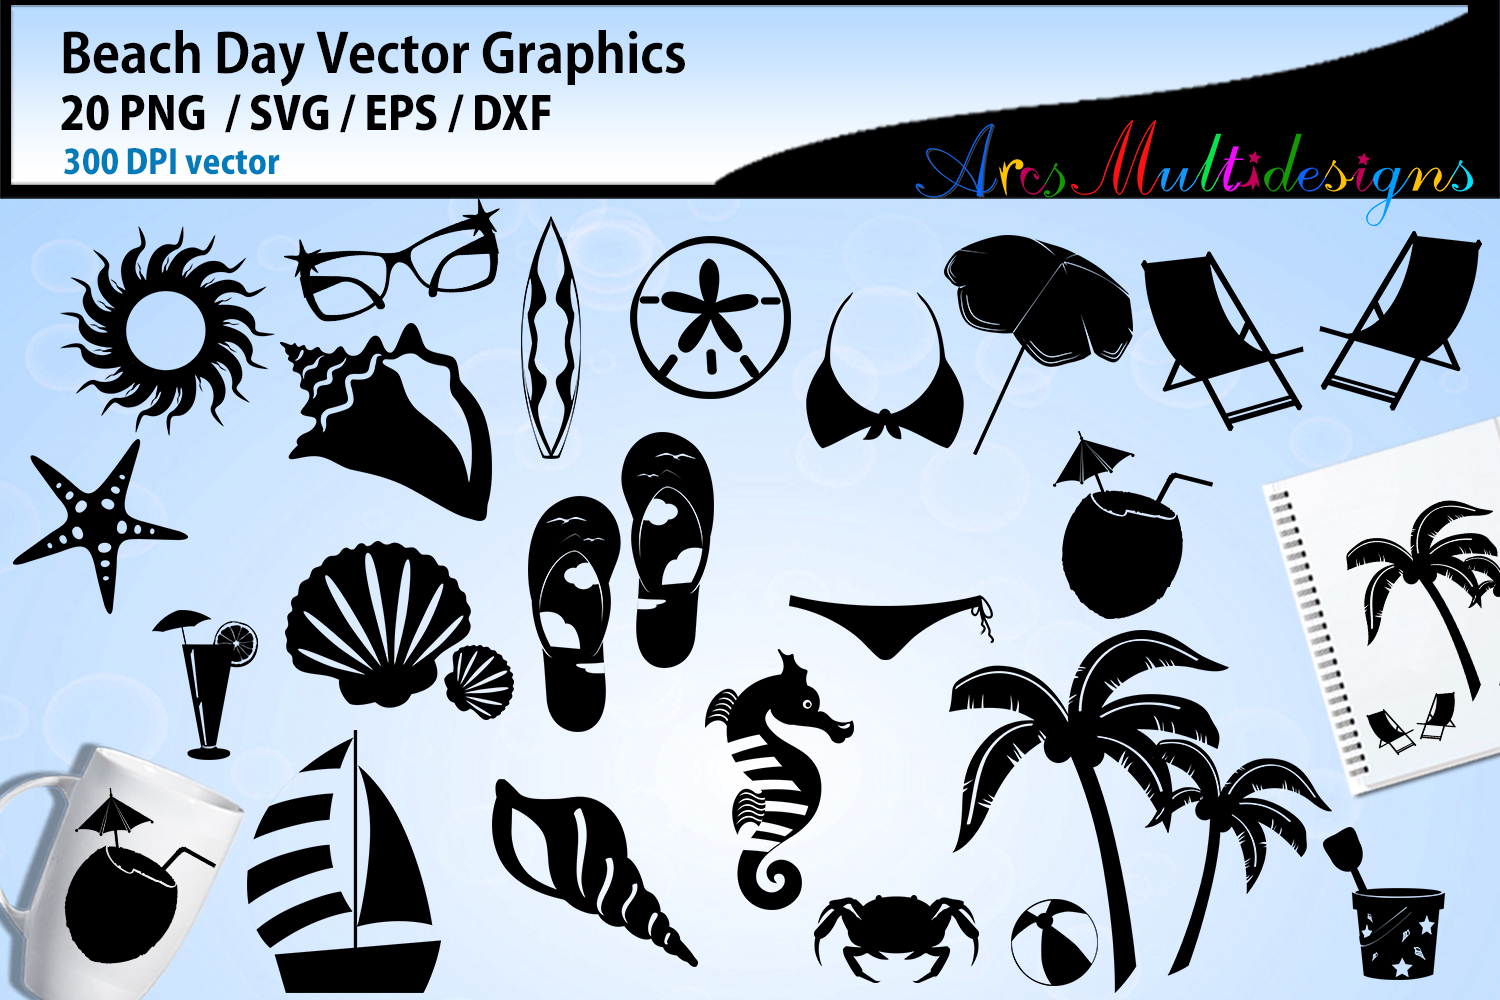 Beach day vector graphics / beach day silhouette clipart svg example image 1